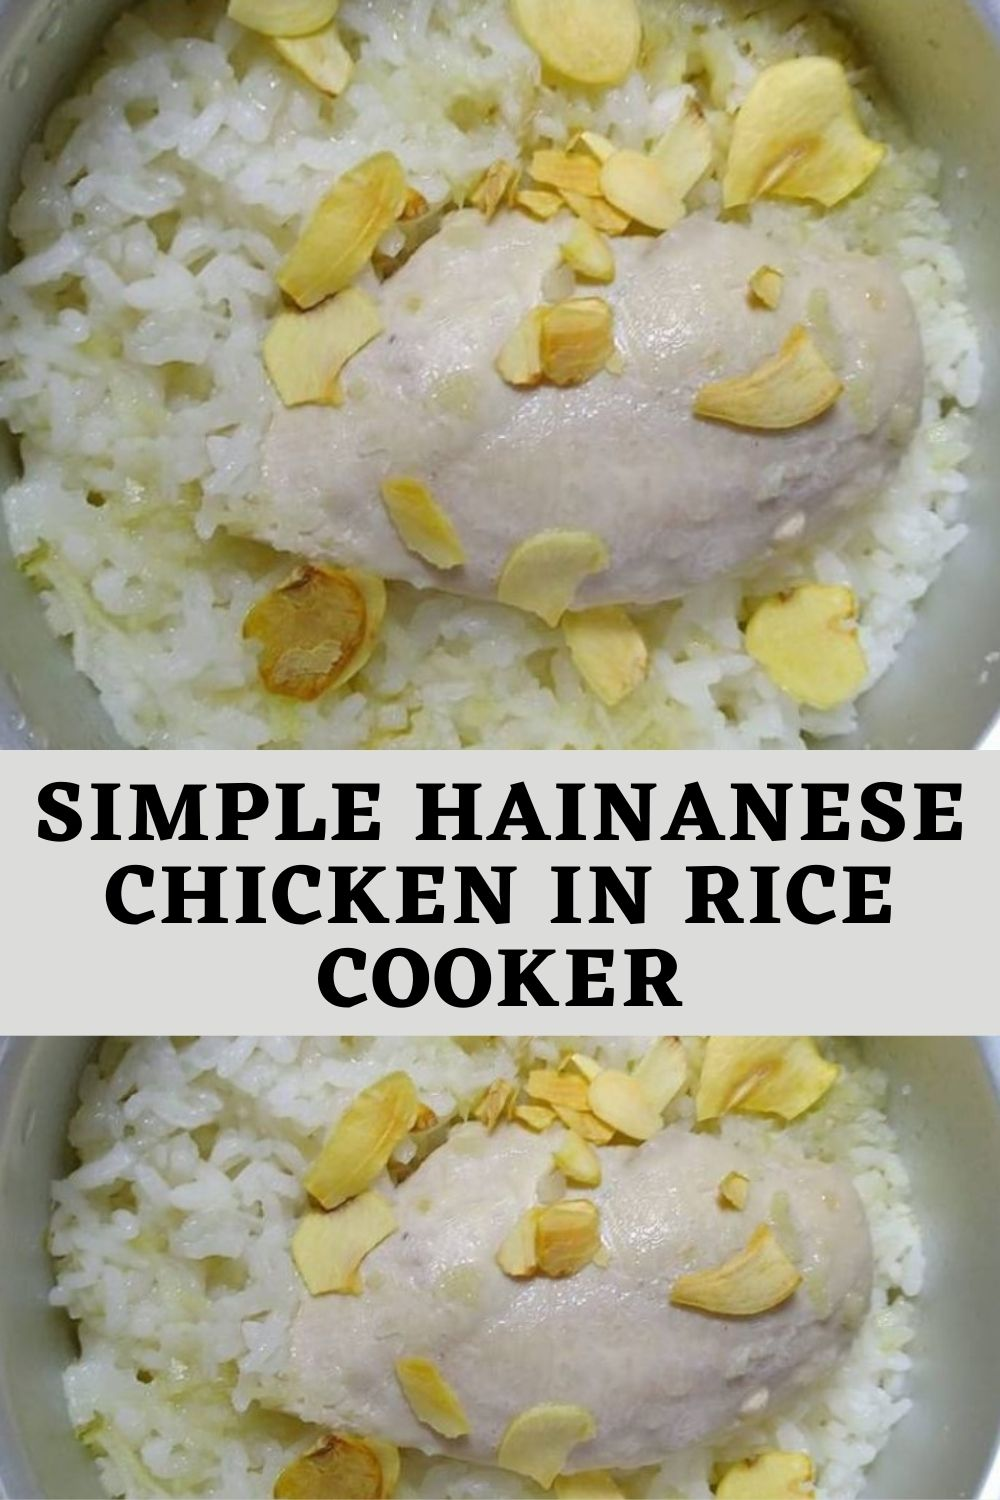 Simple Hainanese Chicken in Rice Cooker (1)